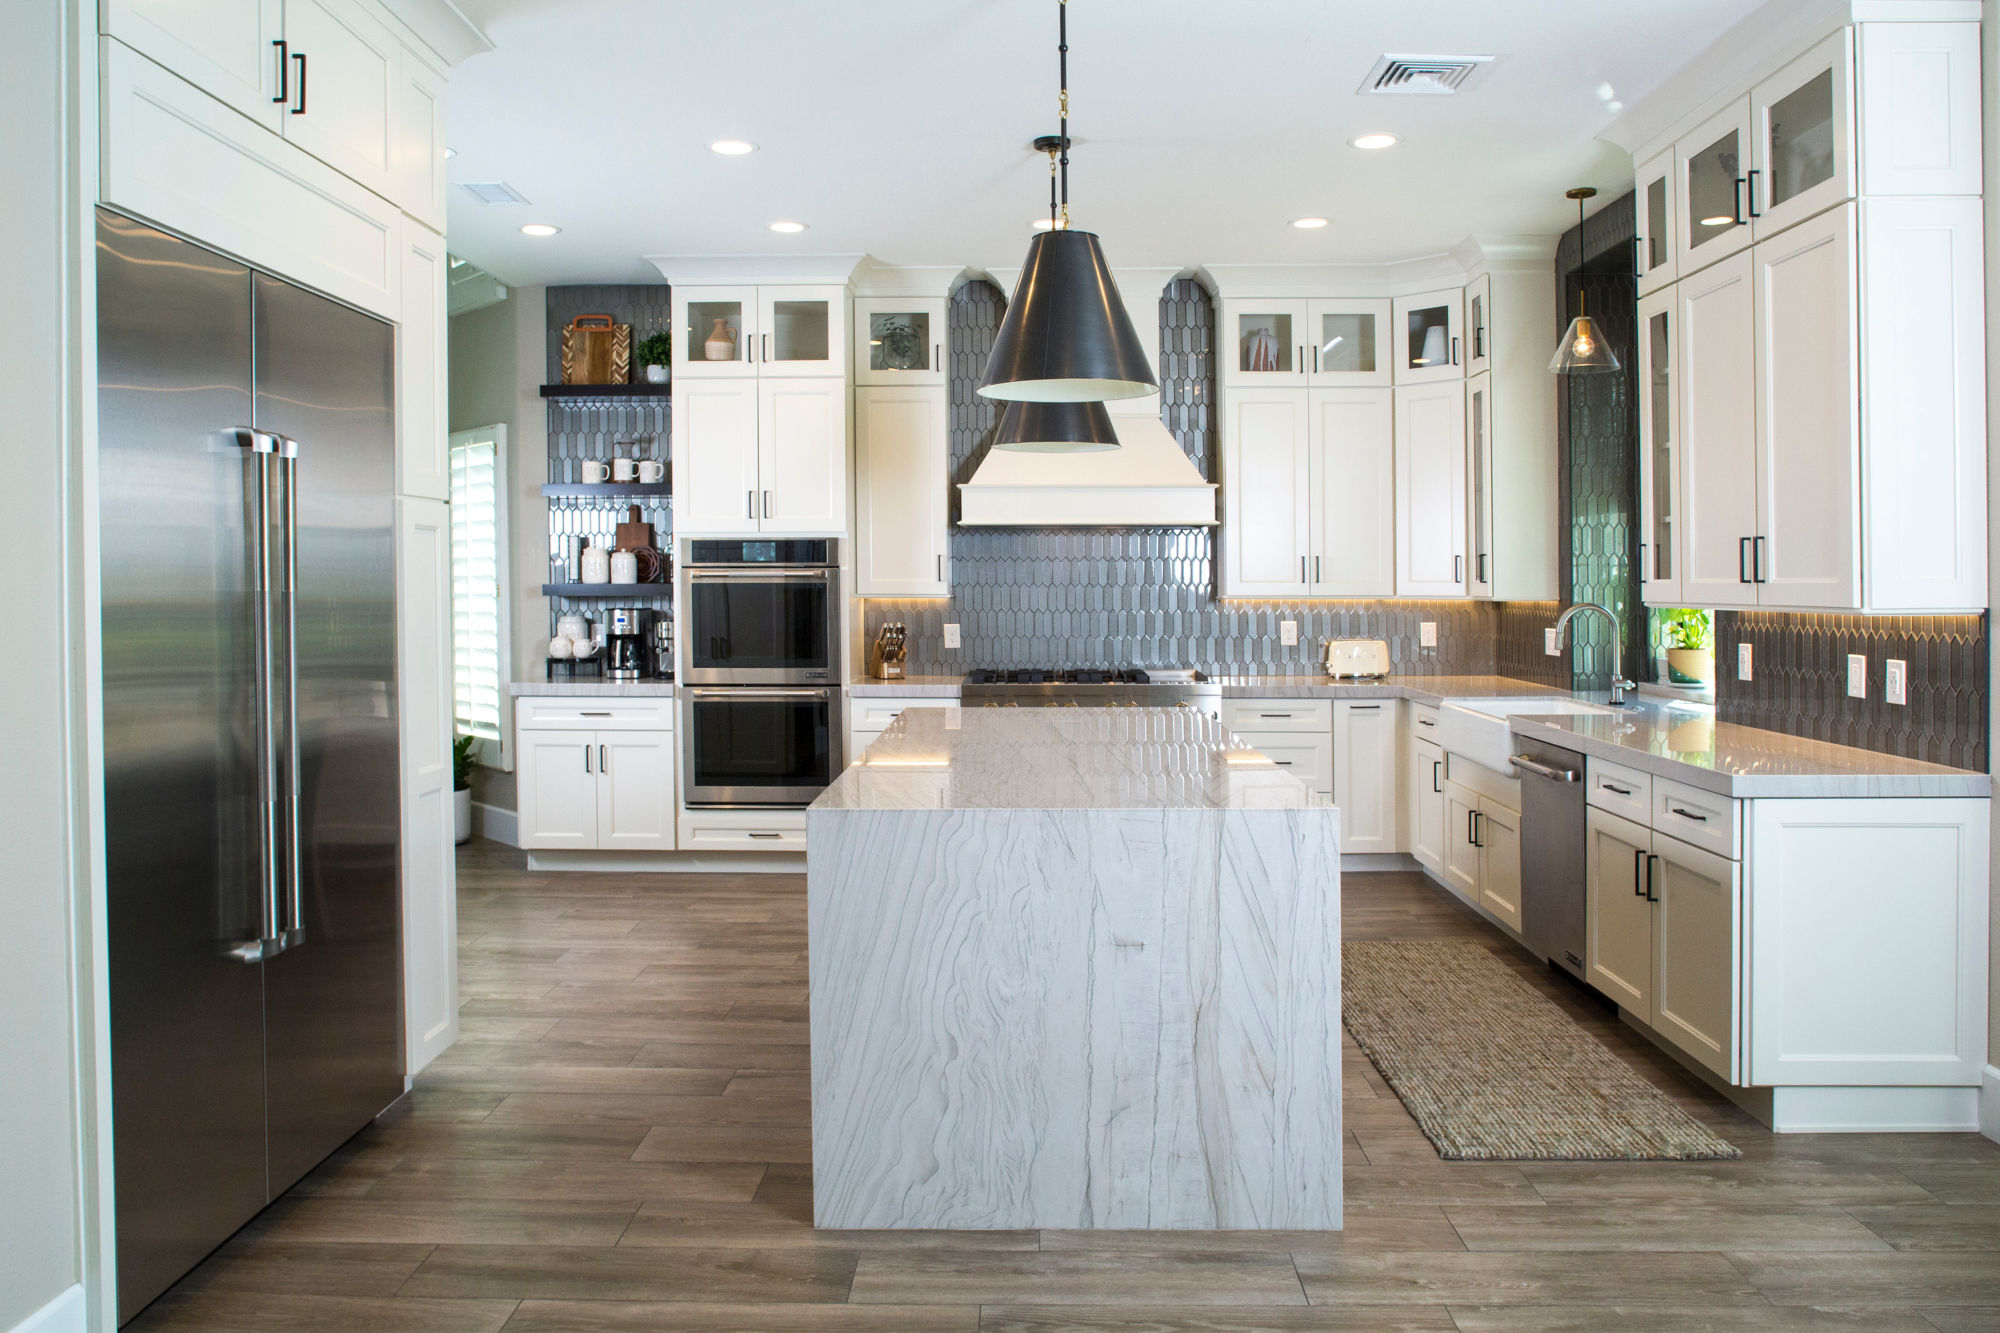 New white kitchen with stainless steel appliances and quartzsite waterfall island.